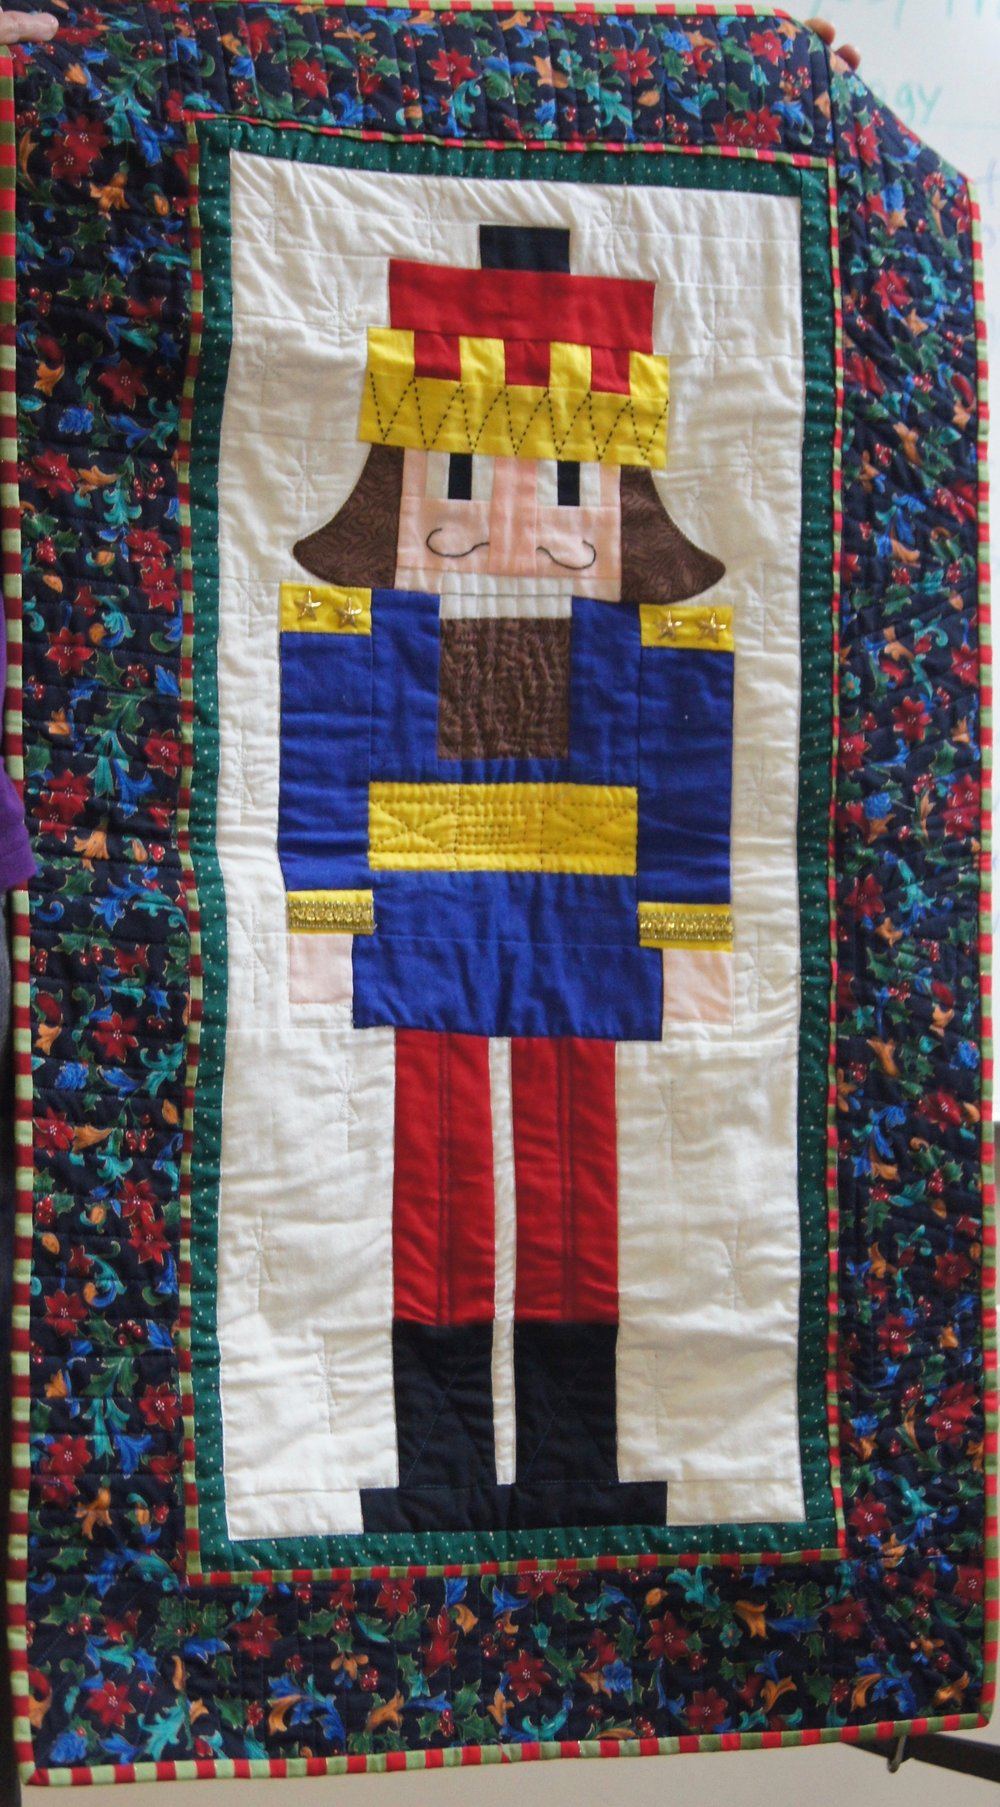 Quilt by Toni Faidley